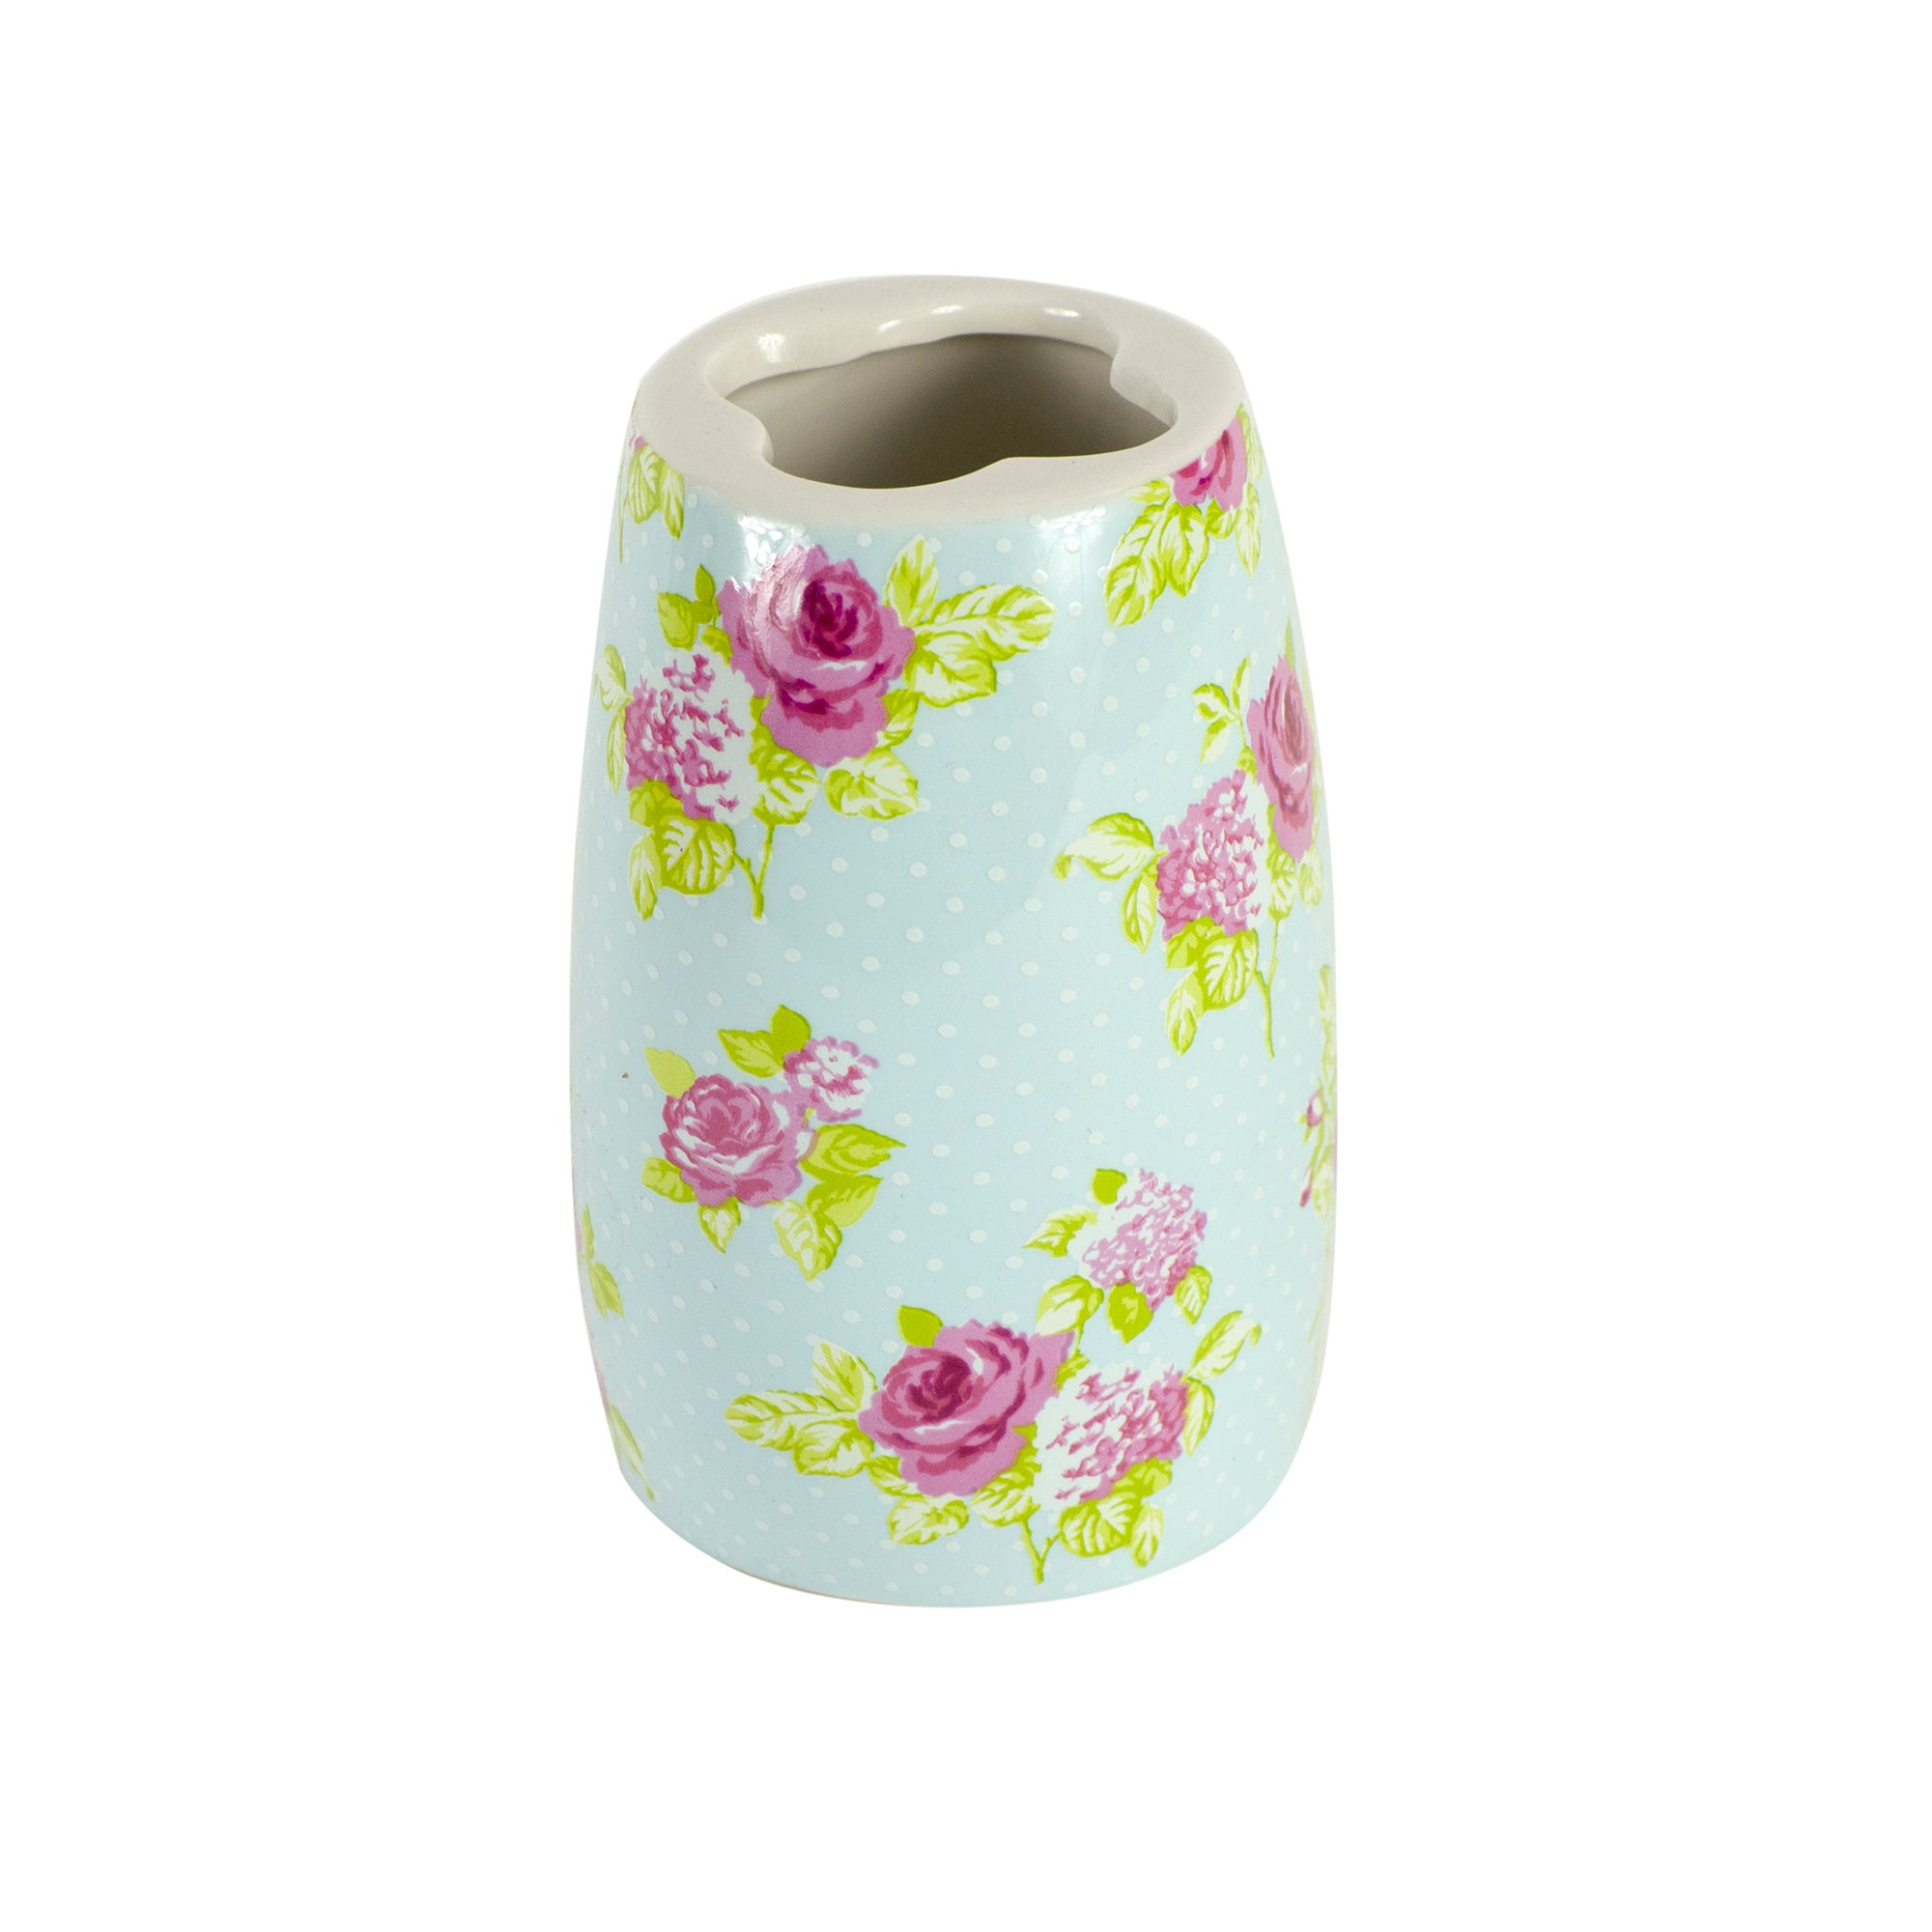 Rose and Ellis Clarendon Collection Toothbrush Holder